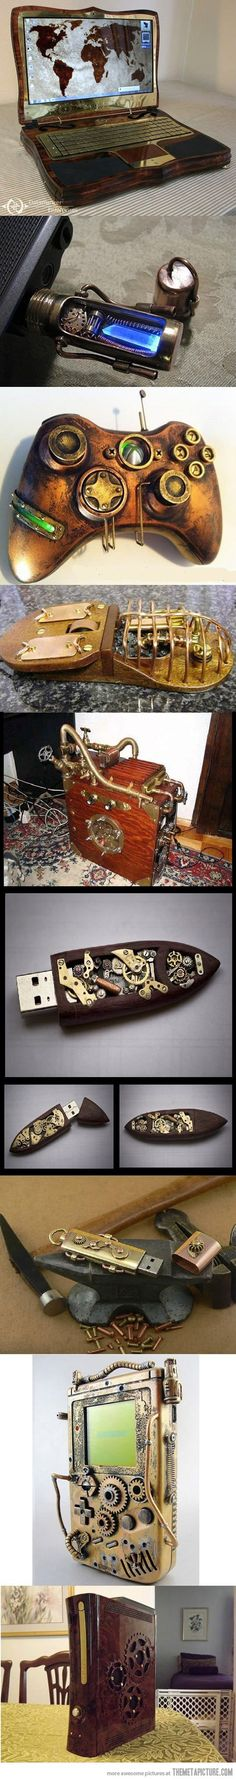 Gamer Steampunk (」゚ロ゚)」